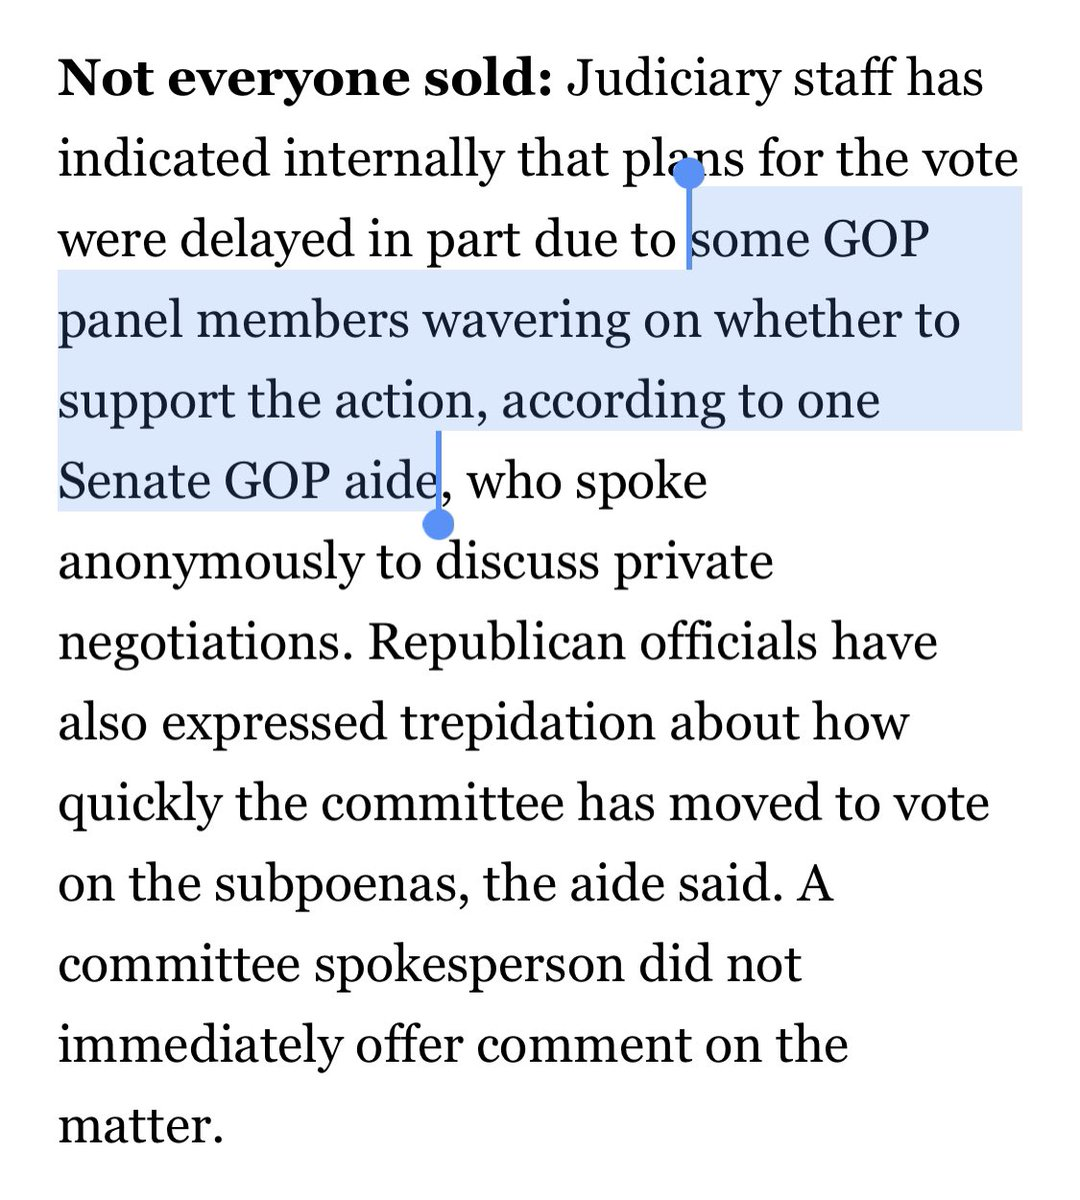 Senate Republicans collapse even on hearings and subpoenas for big tech. We *know* it wasn't Hawley, Cruz or Kennedy staff. https://t.co/Tz4jv2THTQ https://t.co/fMgBacEqYy